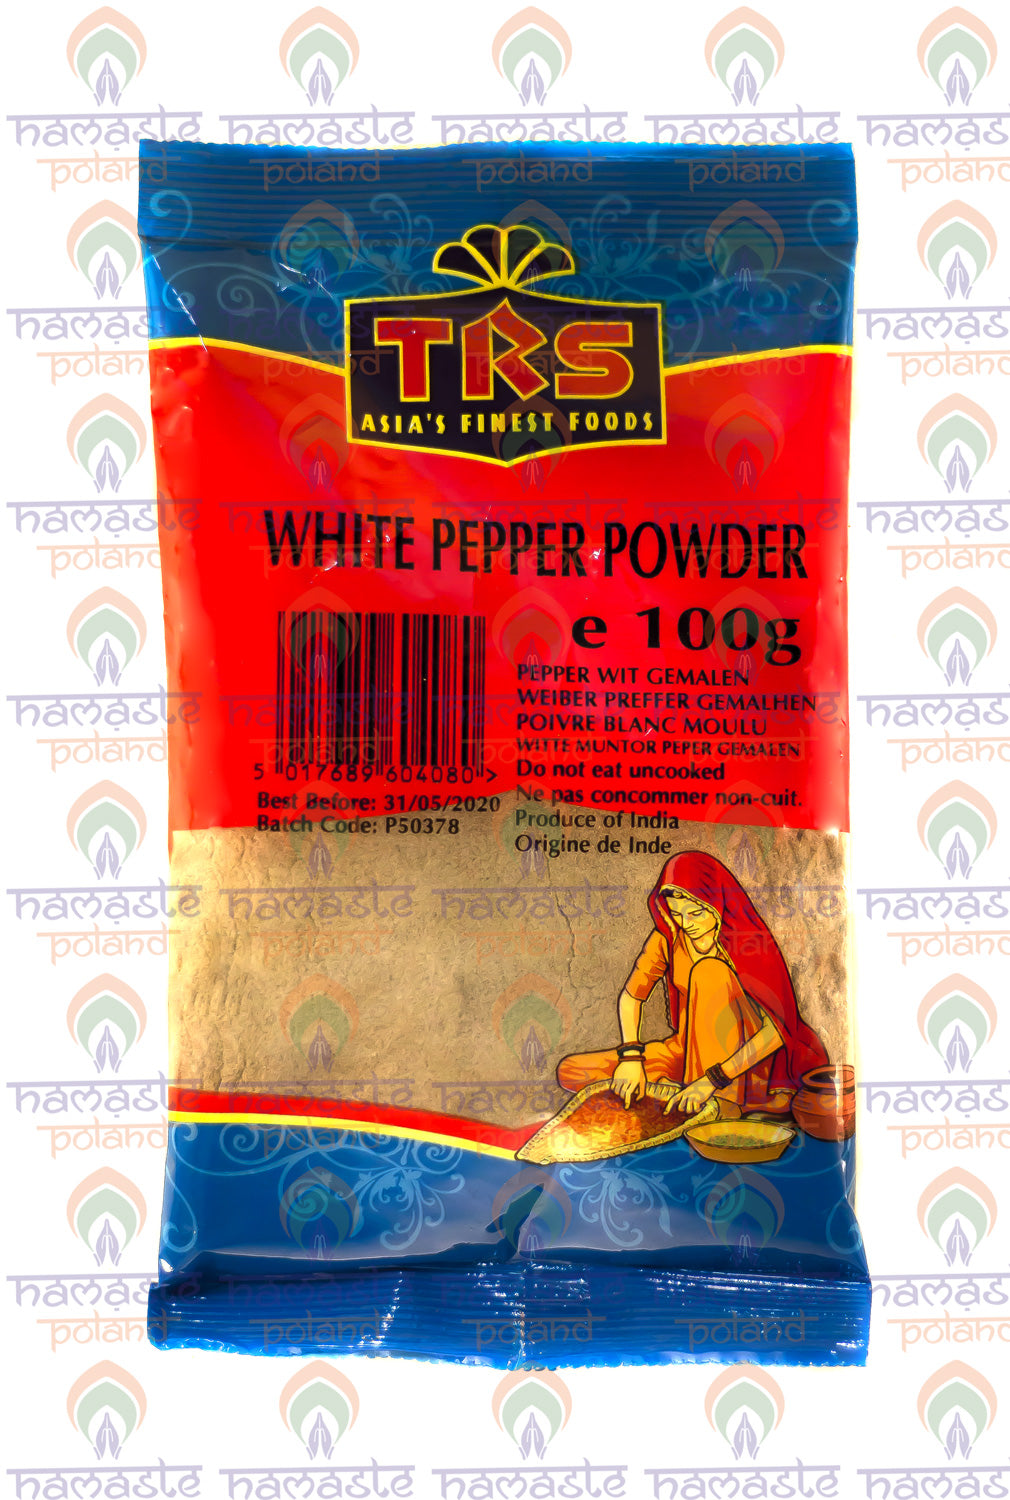 TRS White Pepper Powder 100g